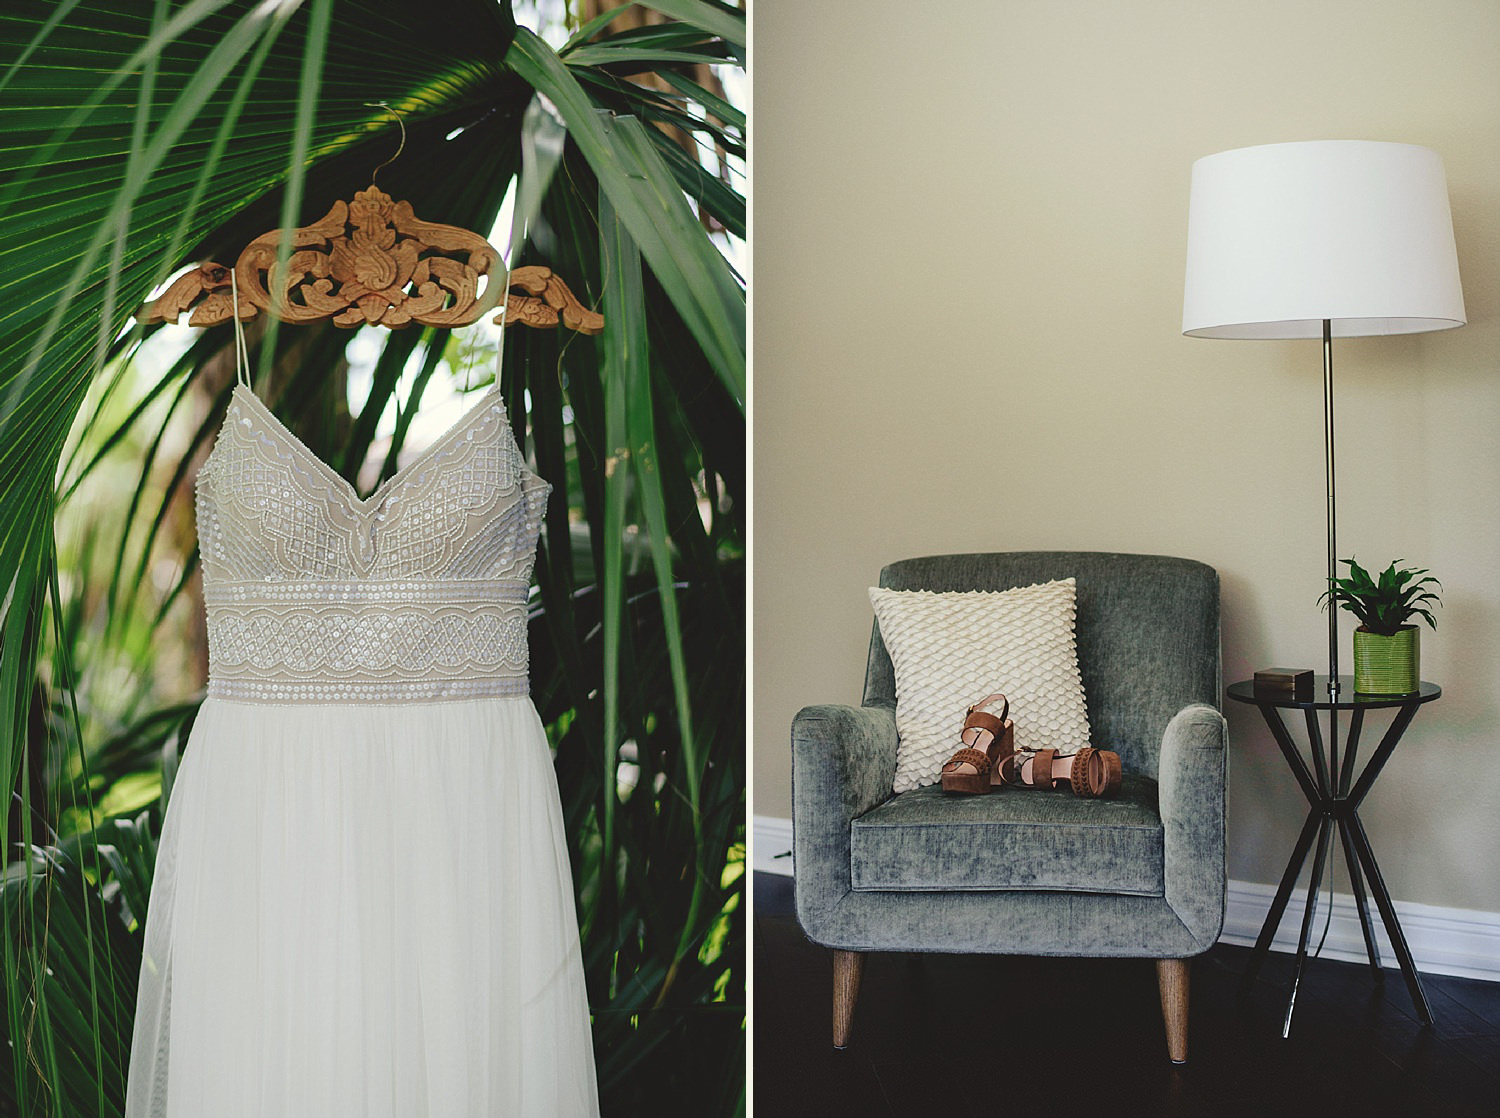 knowles memorial chapel wedding: BLHDN dress and shoes